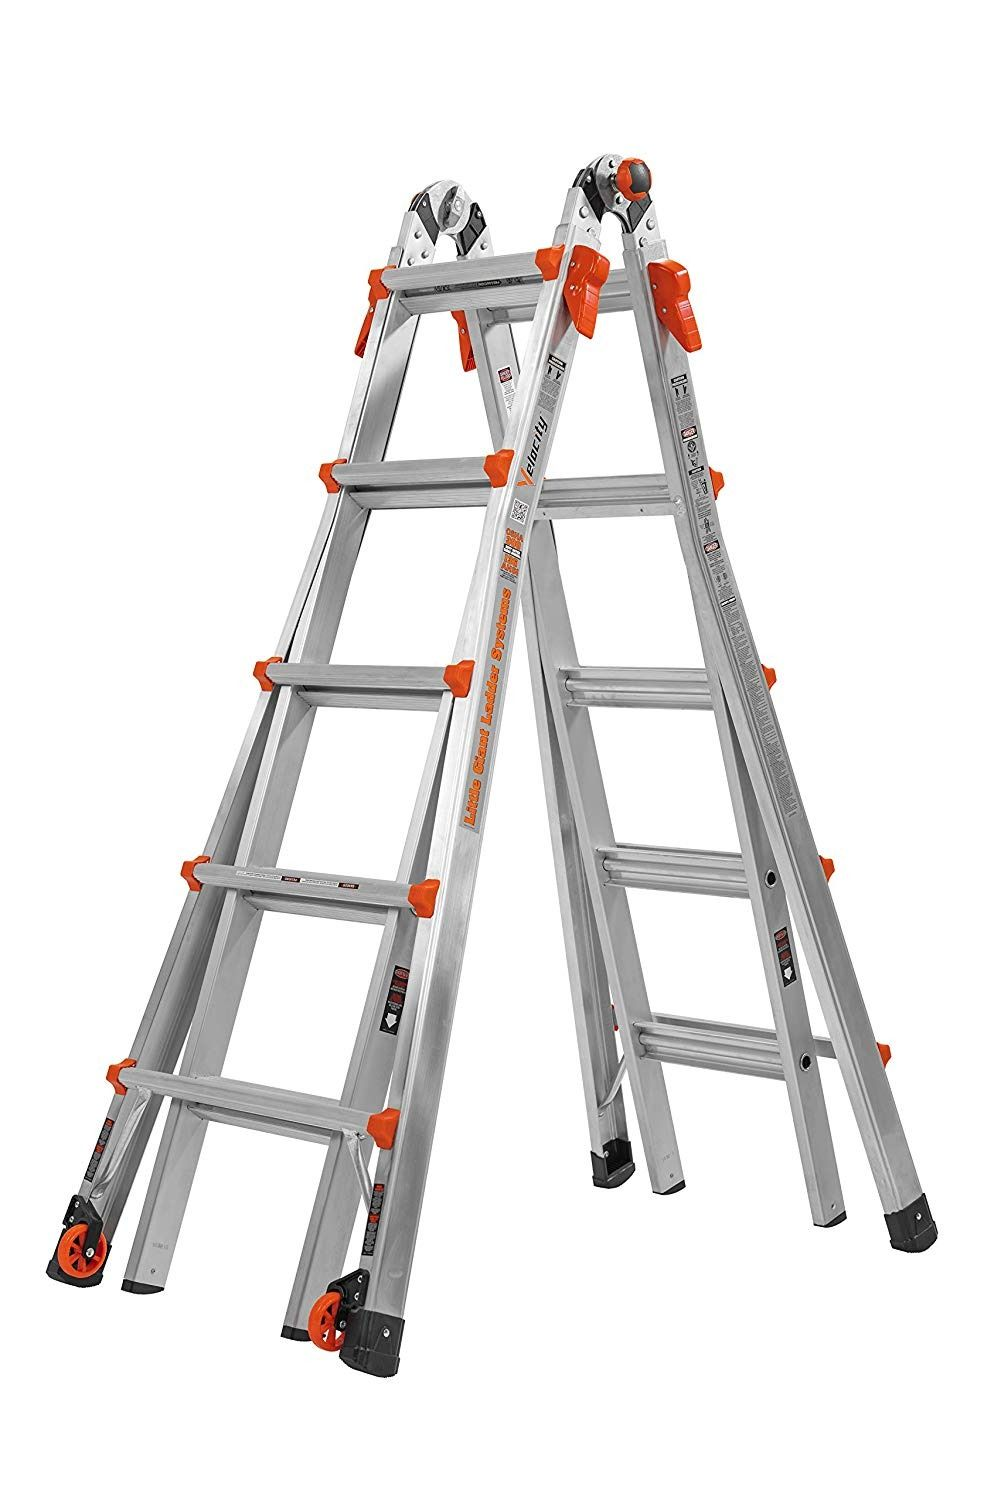 Top 10 Best Extension Ladders Full Reviews Of Popular Models In 2020 Best Ladder Aluminium Ladder Little Giants